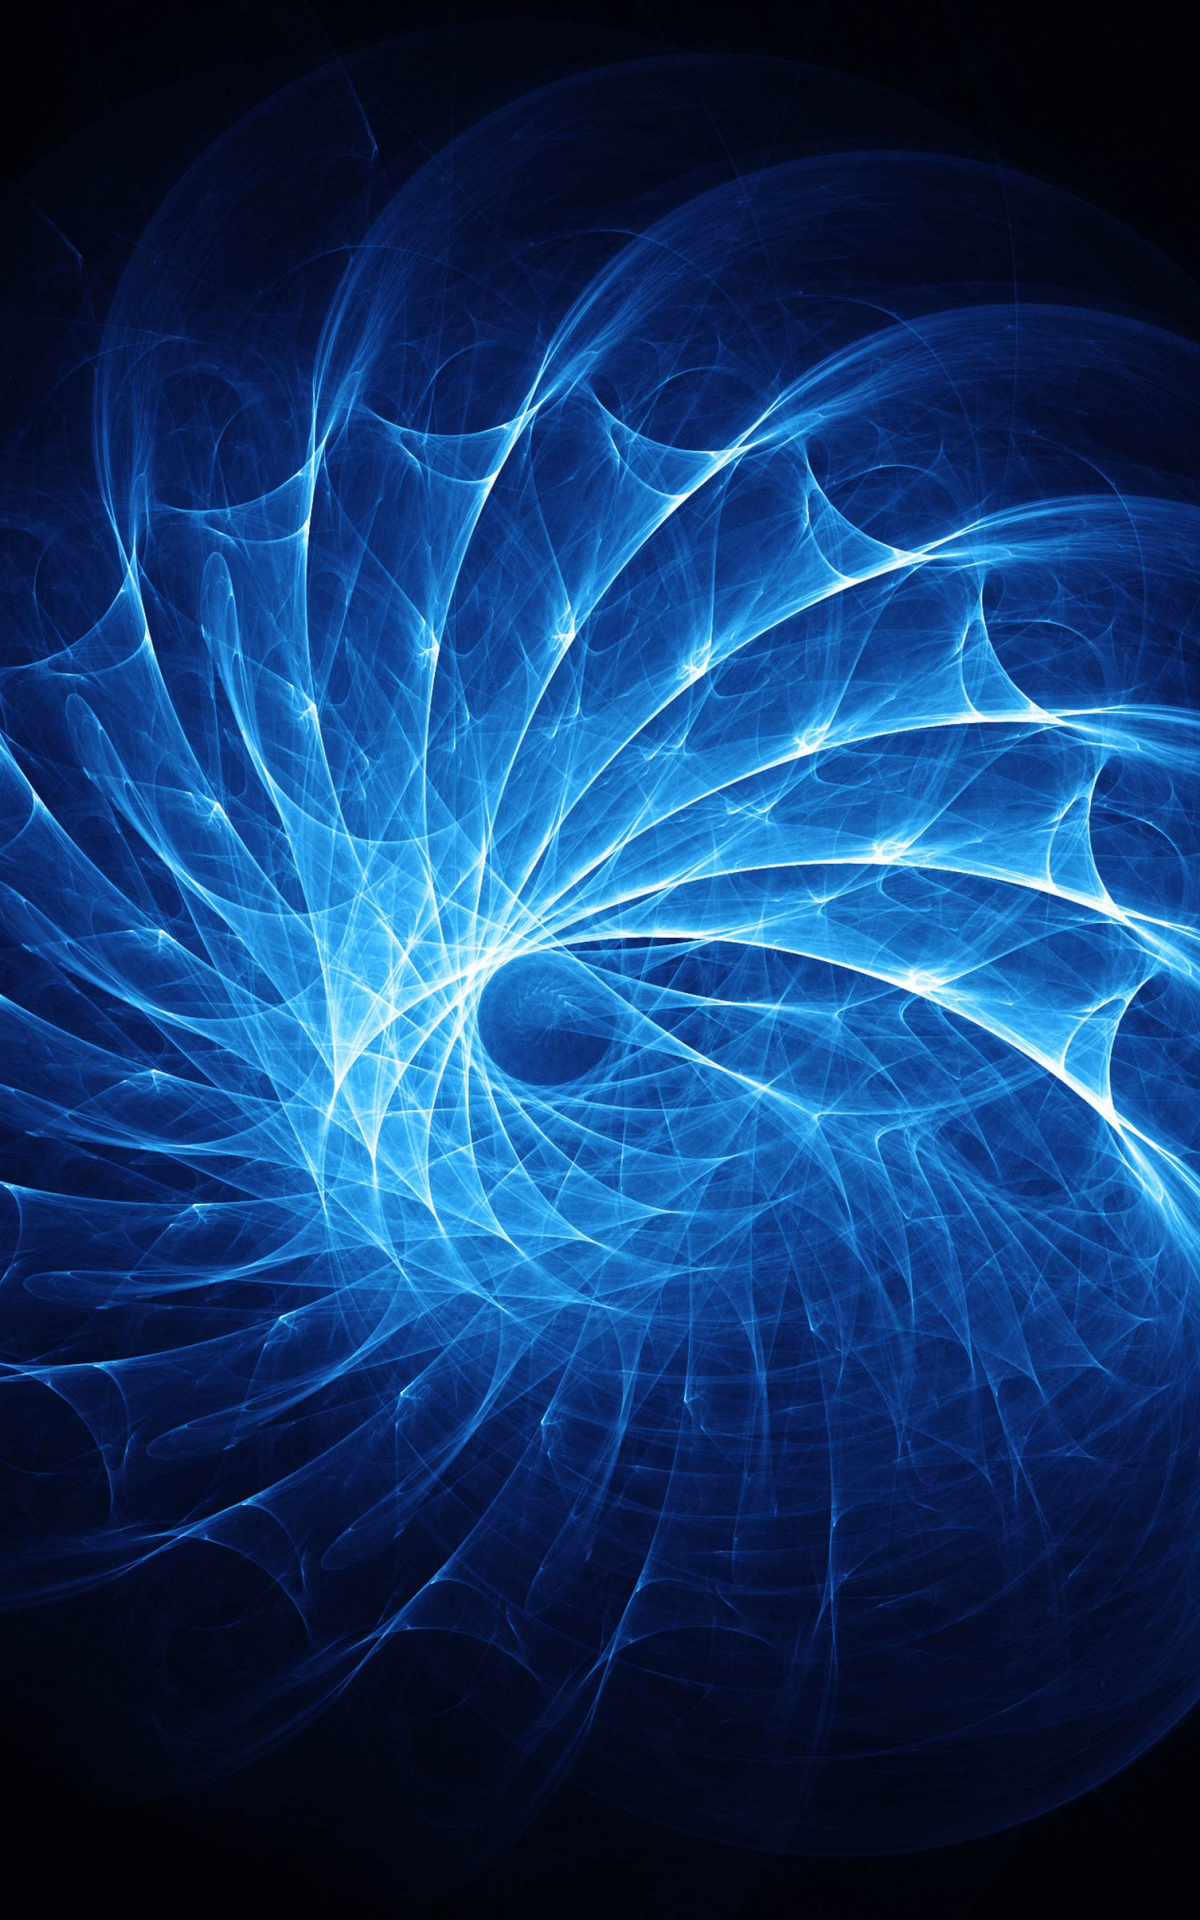 Free download 4k Wallpapers Blue Blue Abstract Wallpaper ...